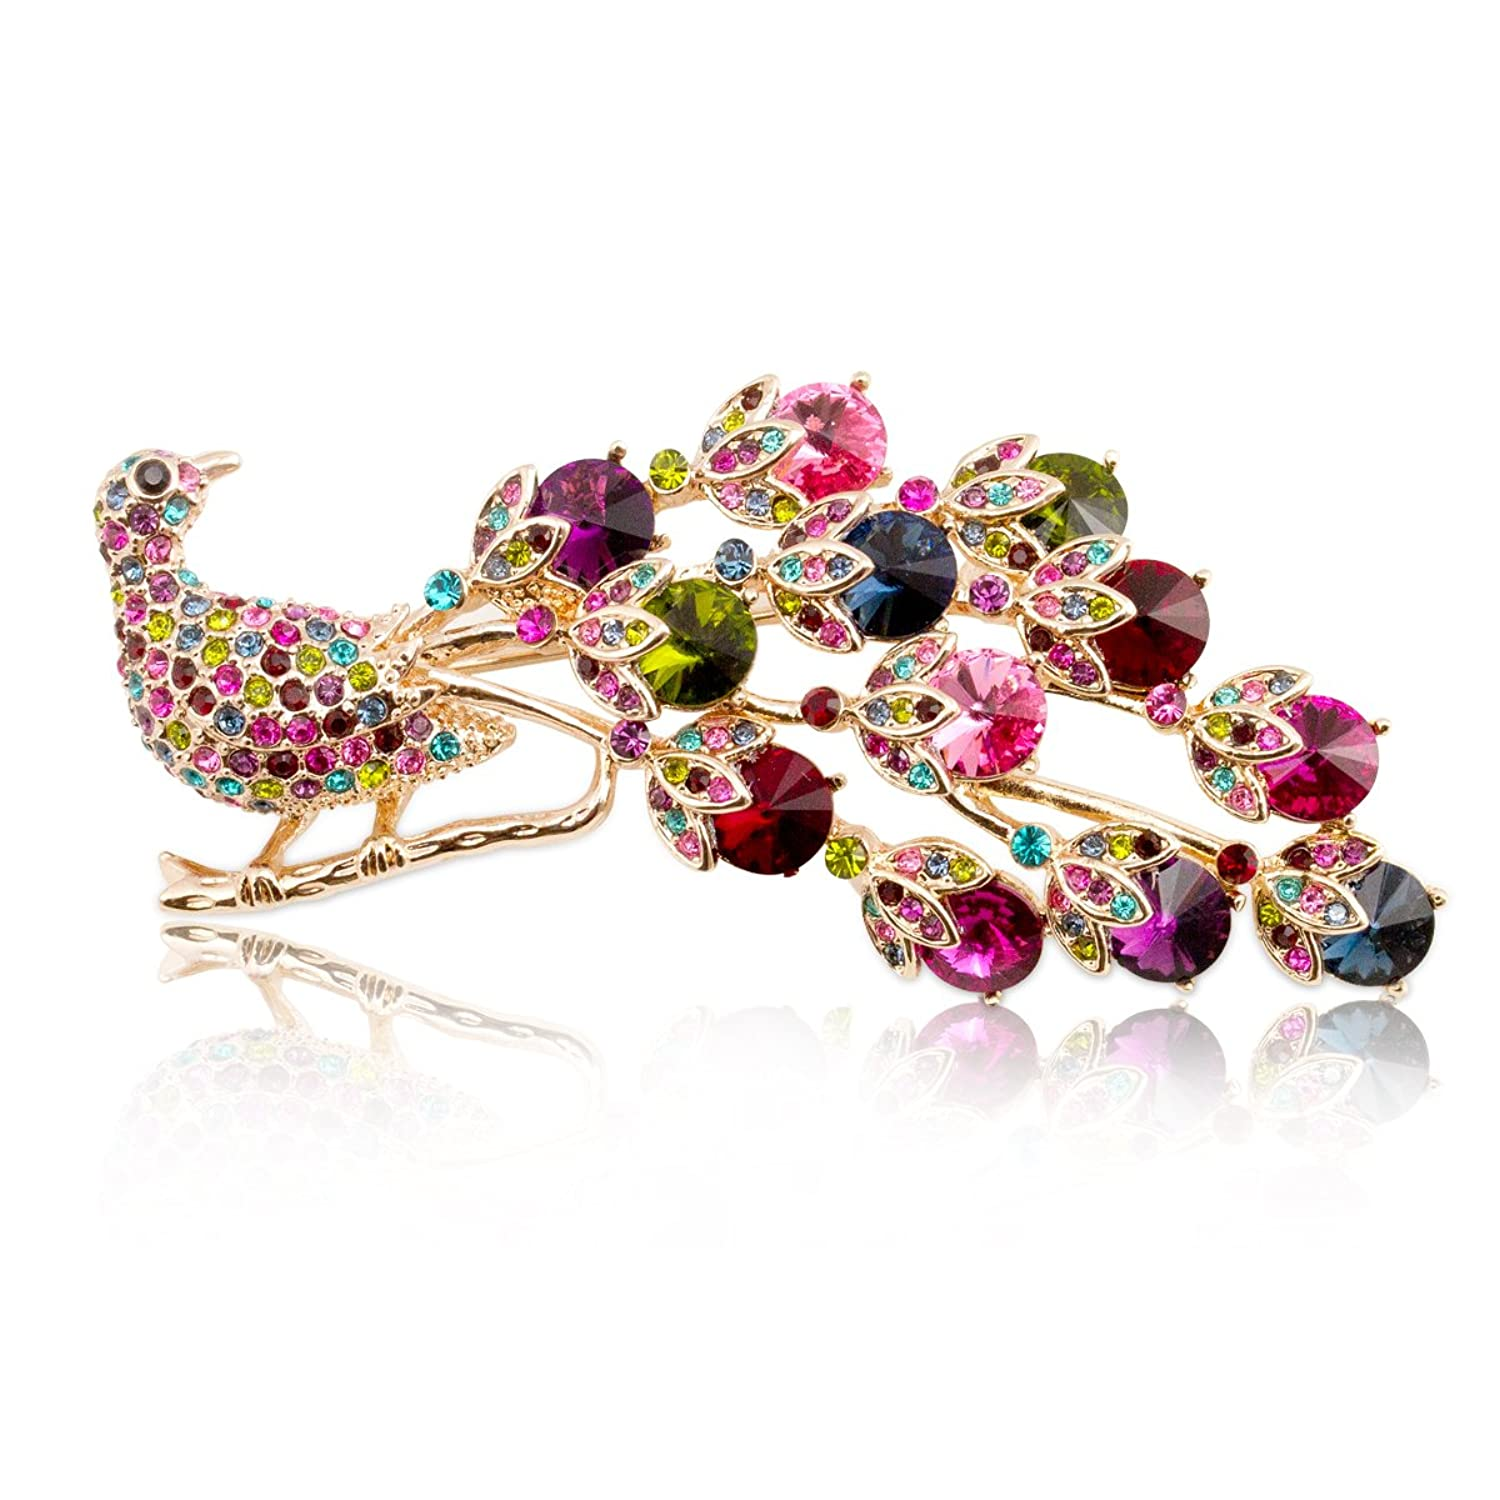 high buccellati en official rametto jewelry alta brooch brooches gioielleria spille natu aster spilla categories